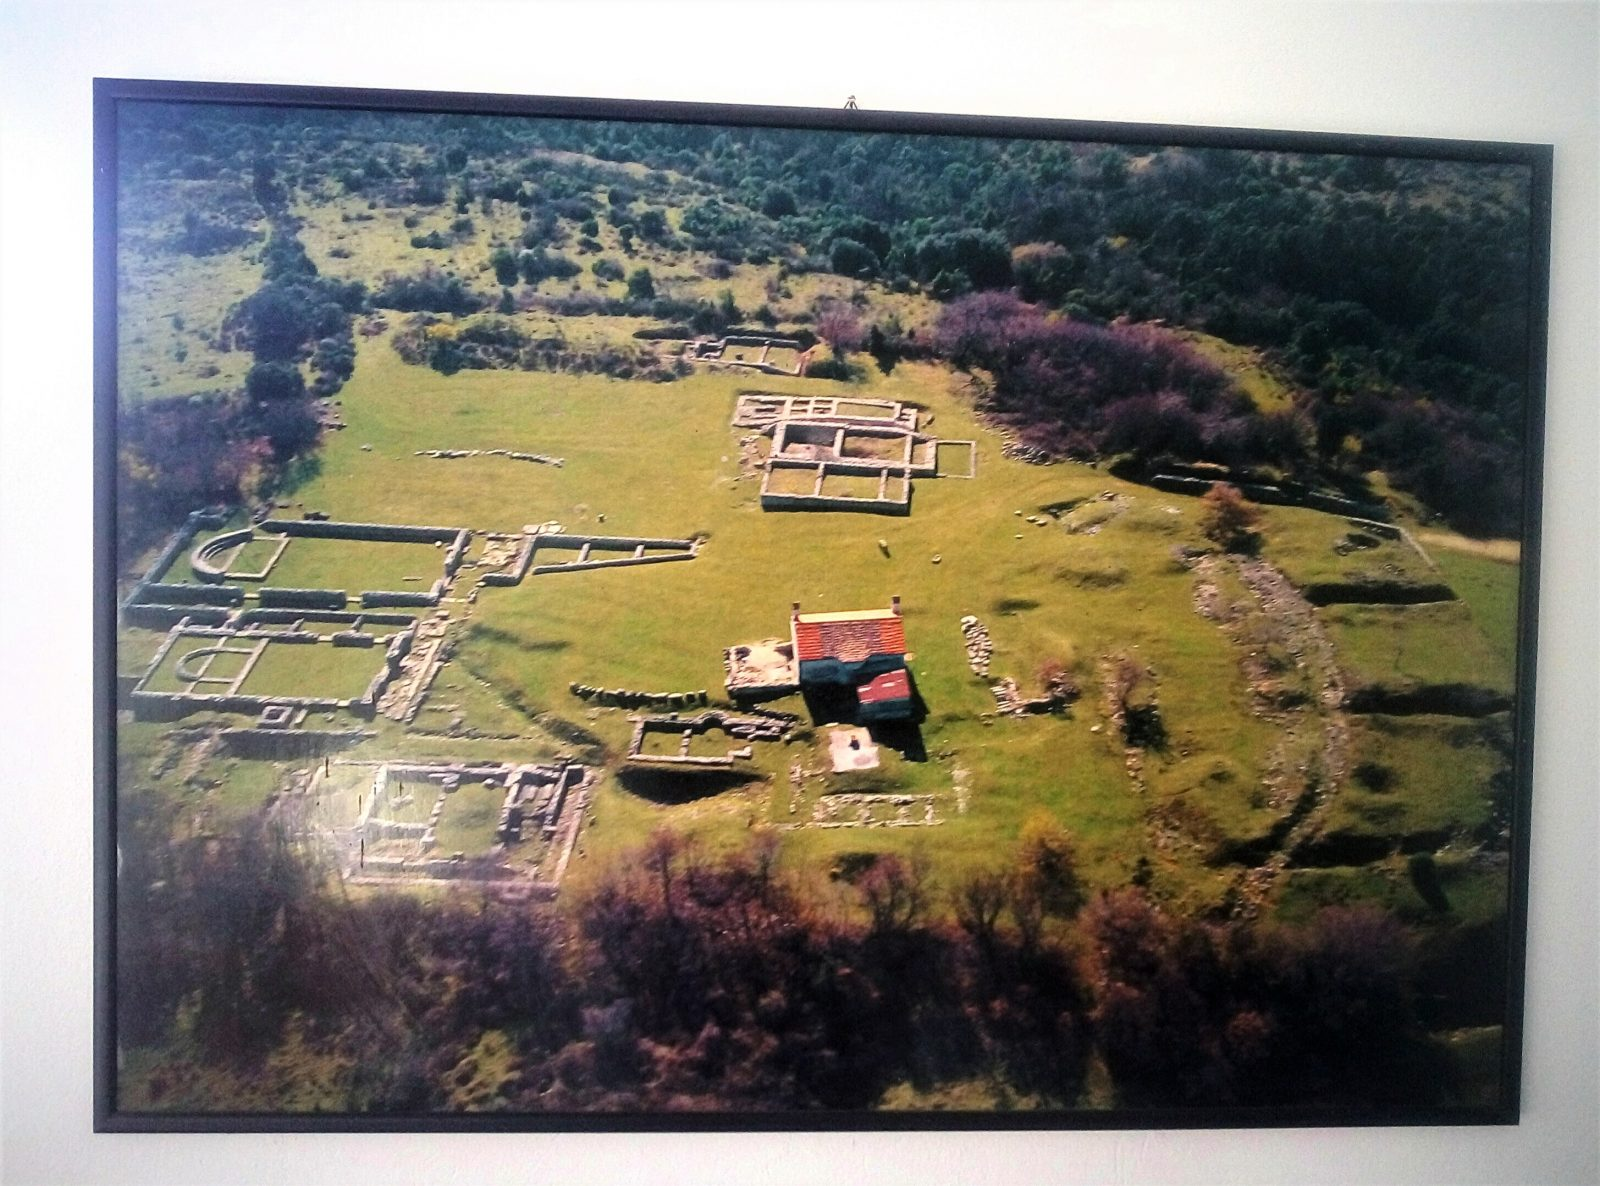 NEZAKCIJ - HISTORICAL ISTRIAN SETTLEMENT WITH A GLORIOUS PAST